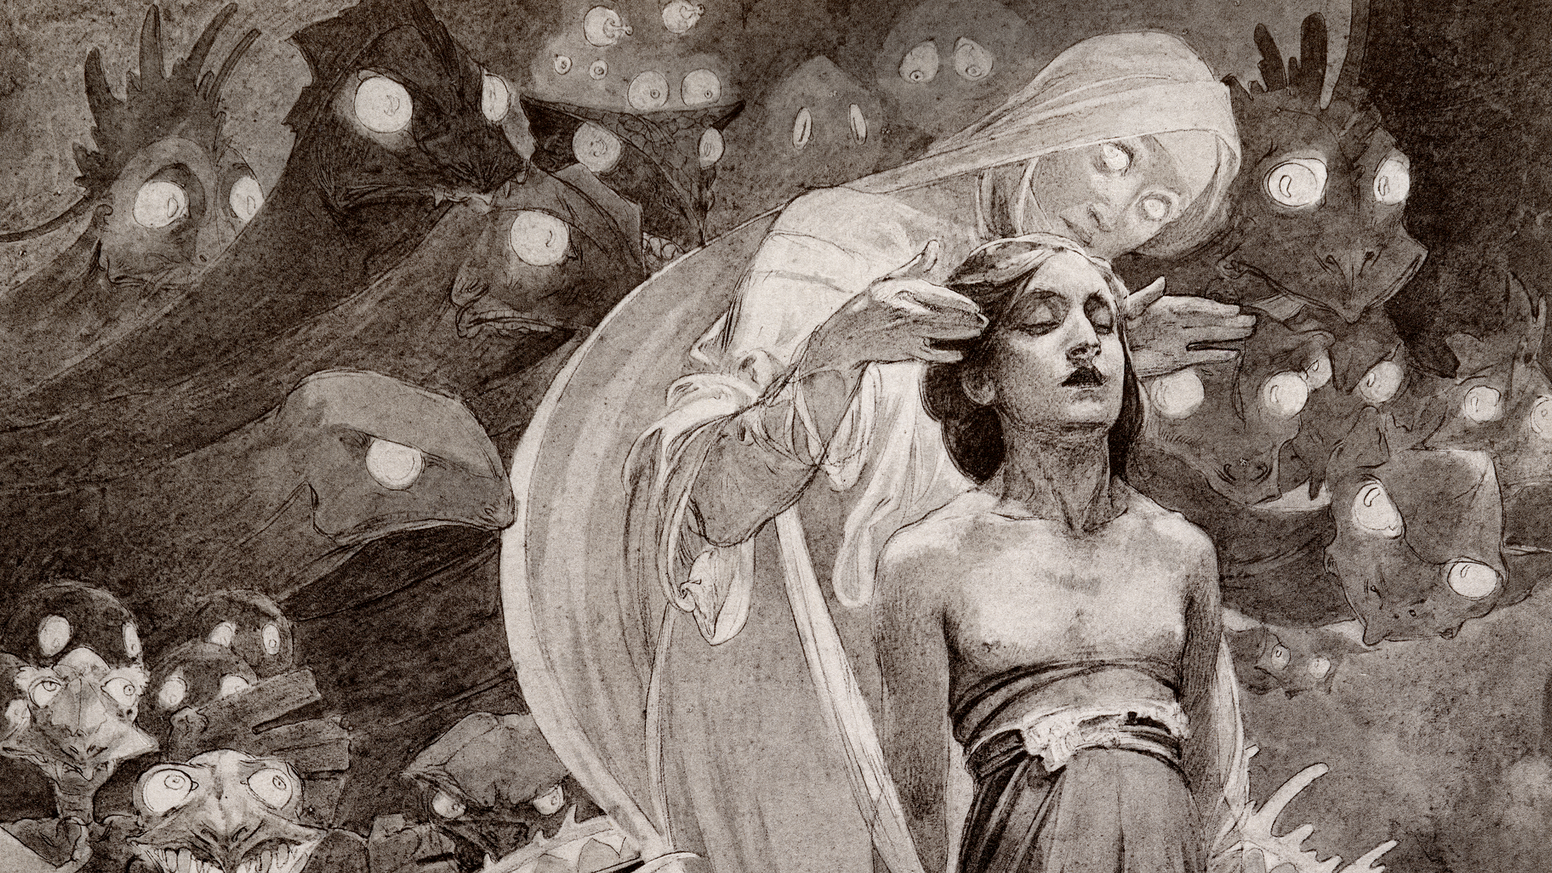 Rare Art Nouveau image from the forthcoming reprint of Alphonse Mucha's mystical 1899 masterpiece in a deluxe limited edition print